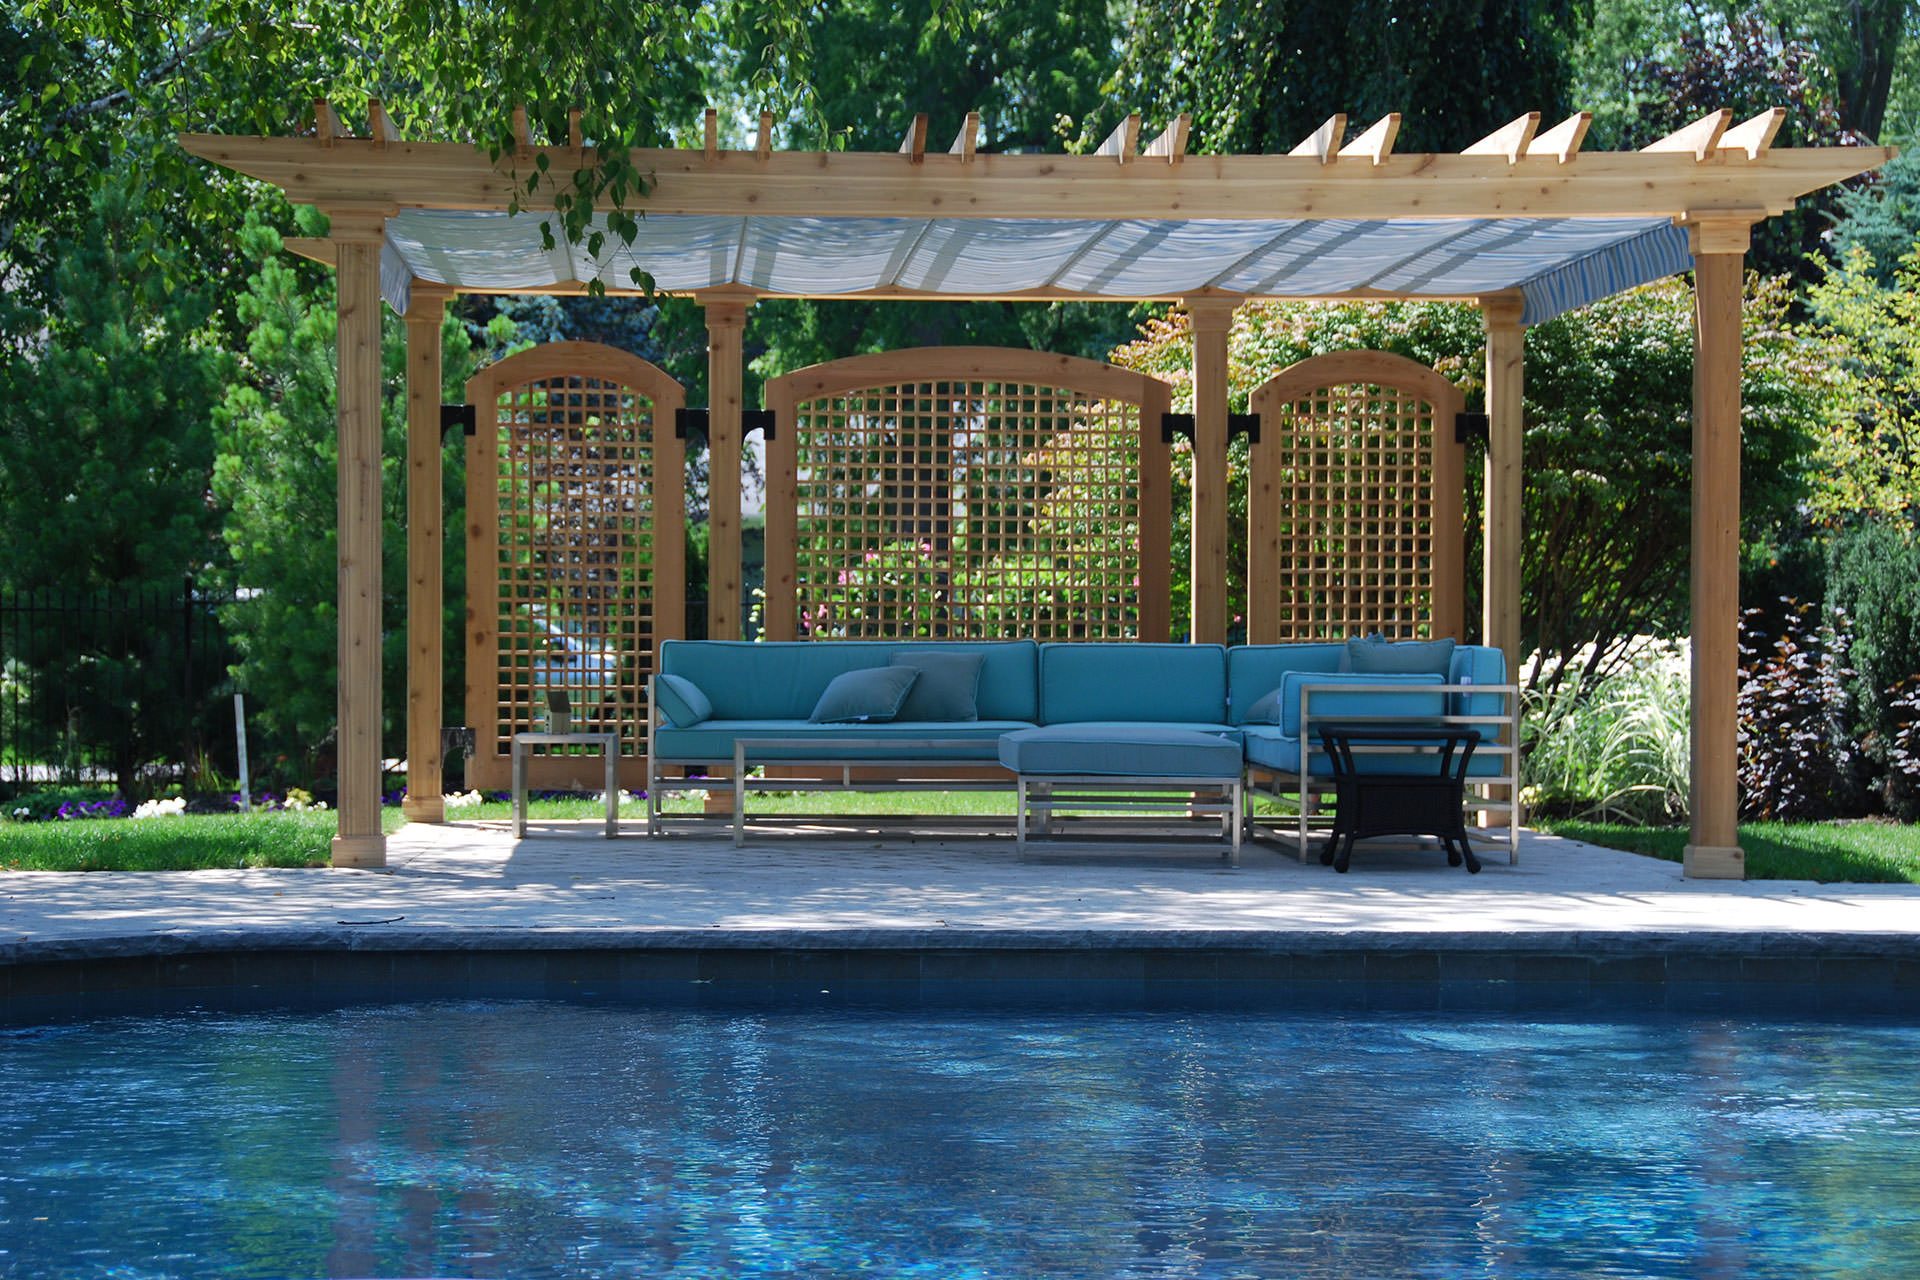 pool shade ideas: 7 ways to cover your swimming pool - Cheap Patio Shade Ideas